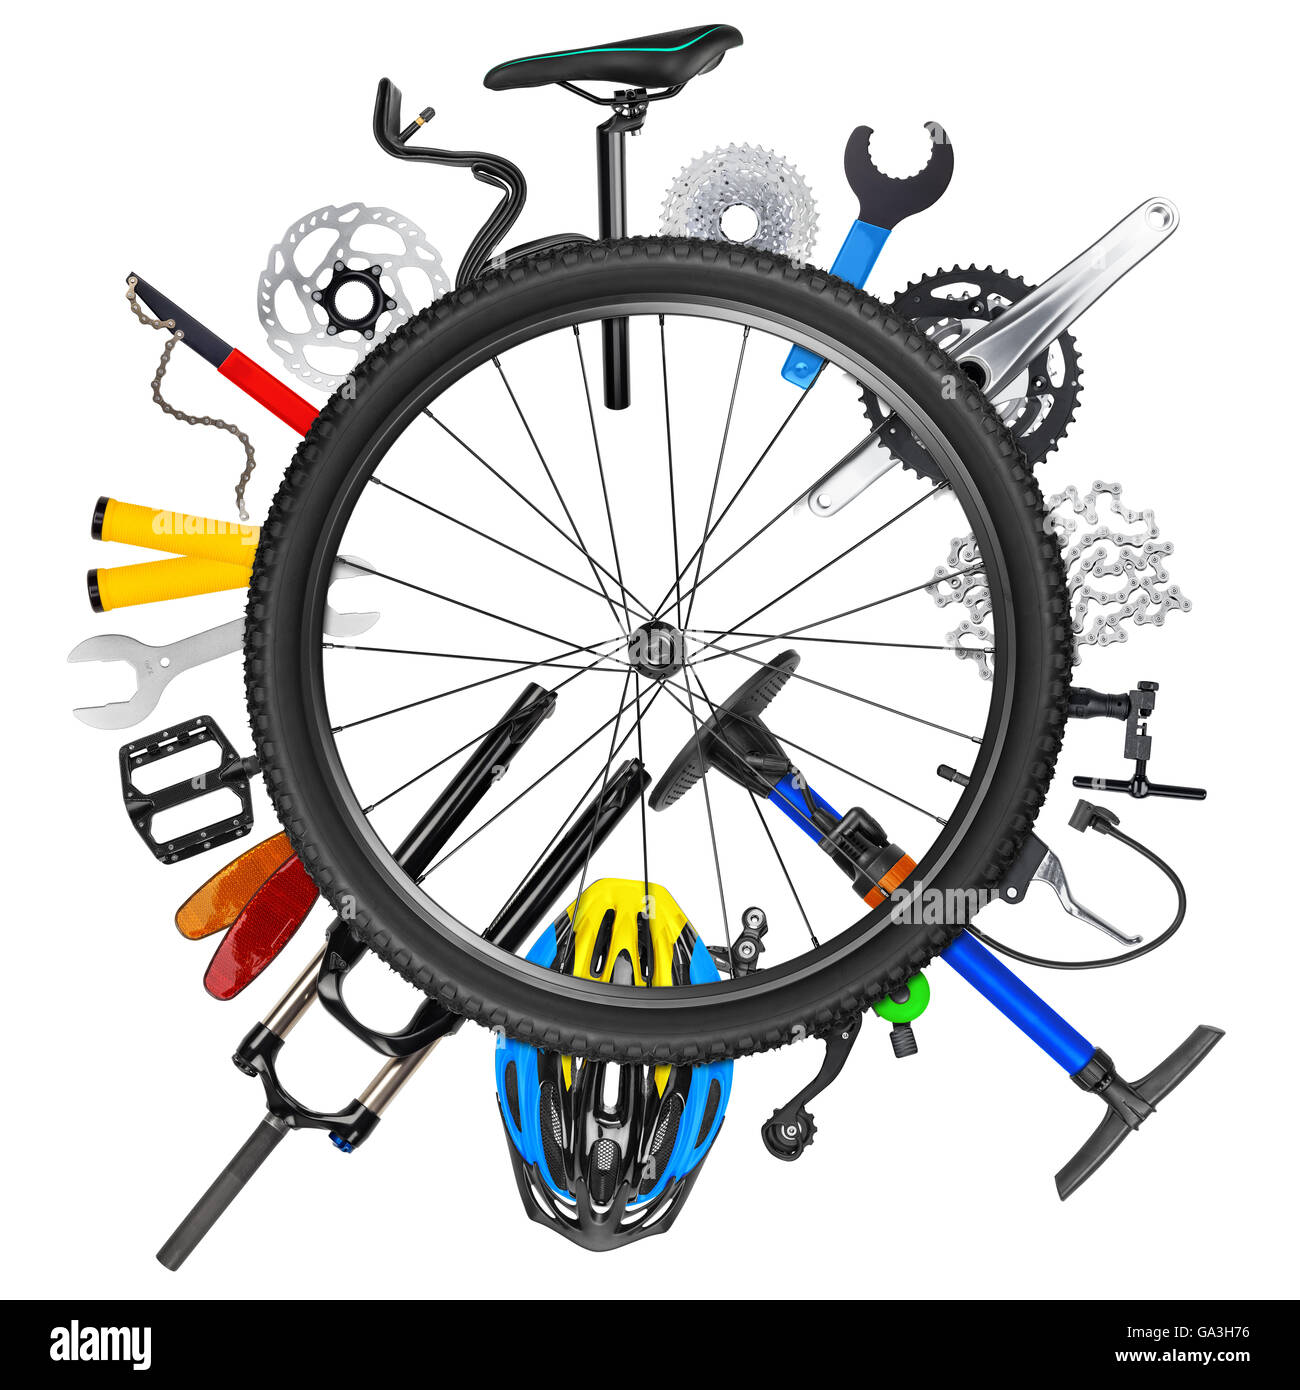 bicycle bike part isolated collage concept wheel tyre tire sport rim component white background accessory equipment - Stock Image